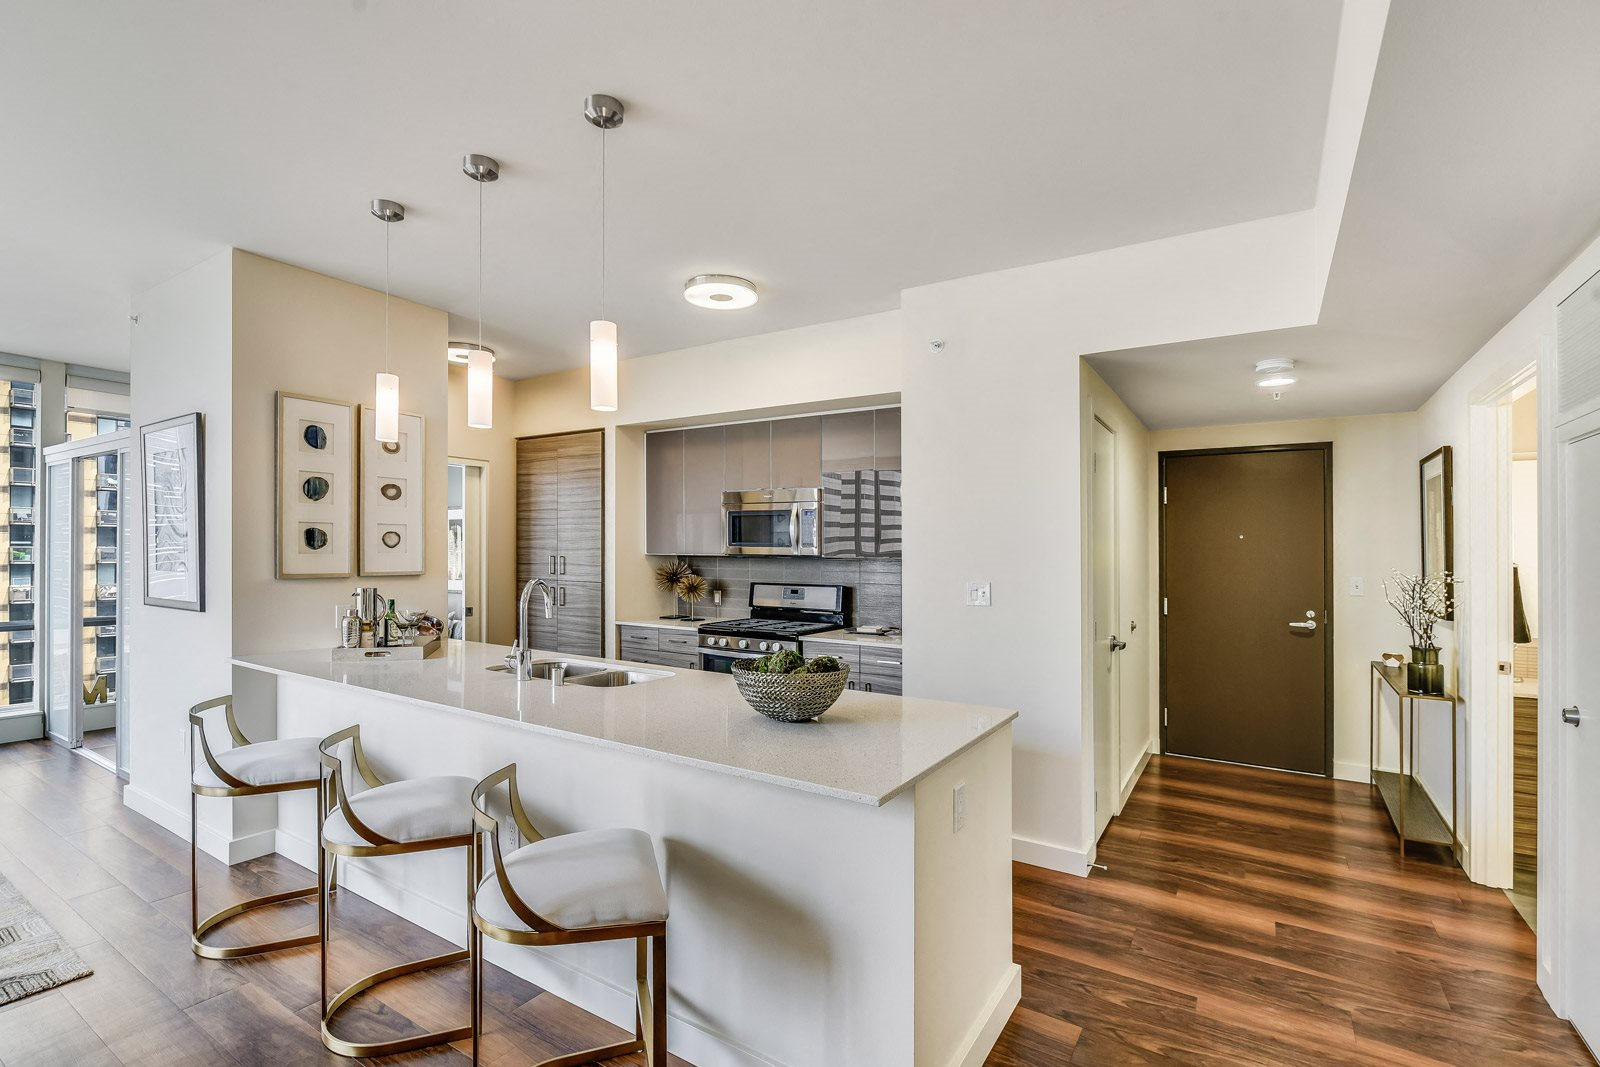 Modern, Designer Kitchens at The Martin, 2105 5th Ave, Seattle